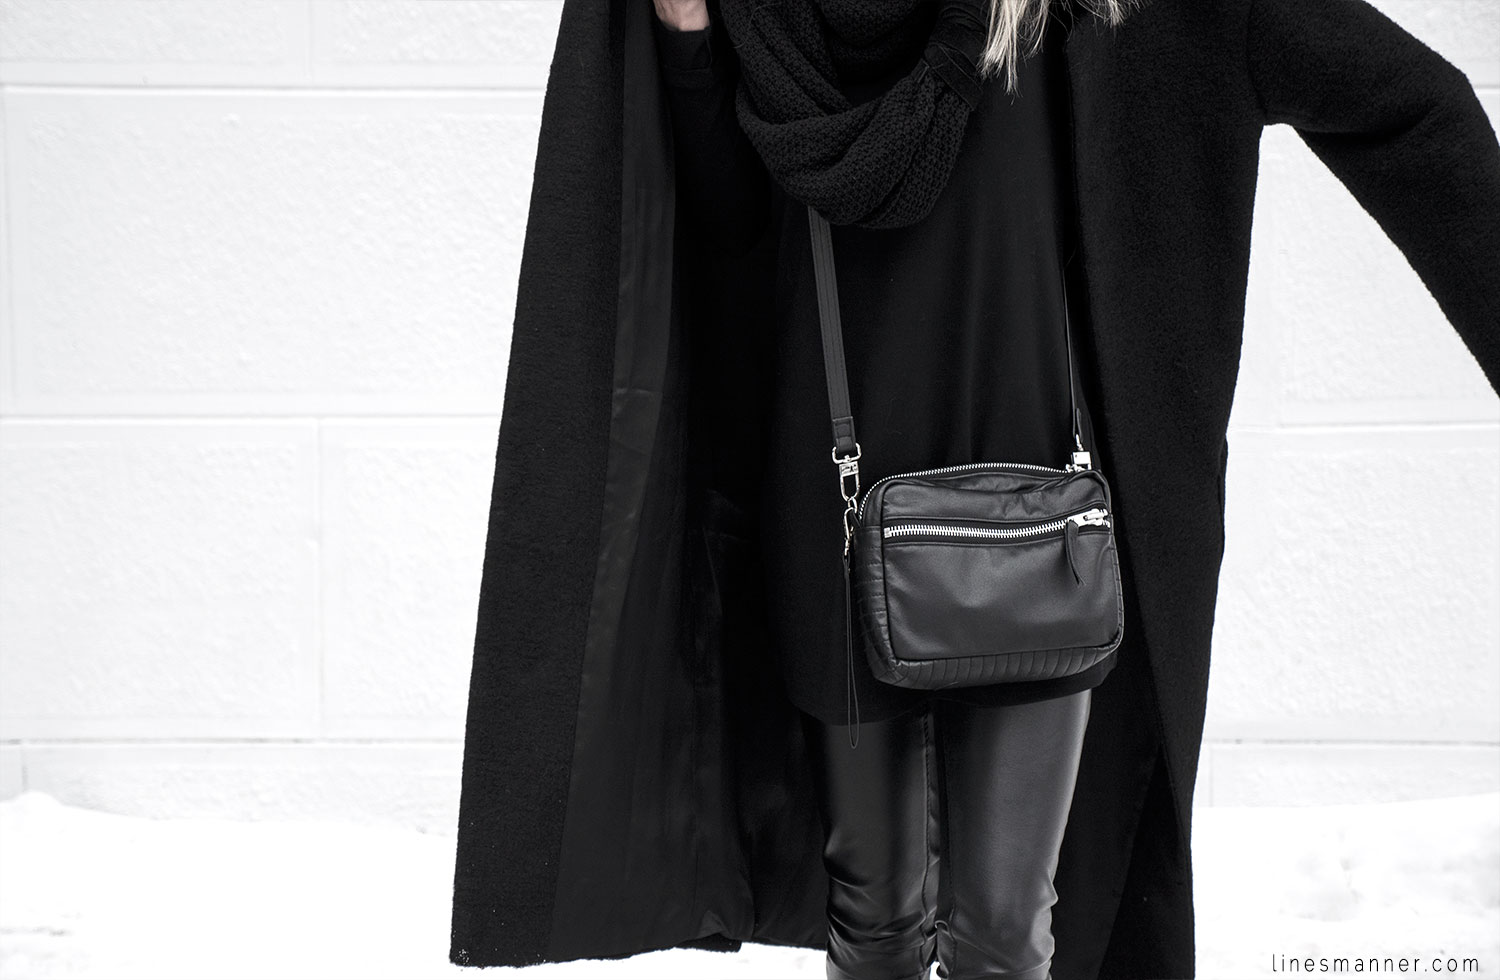 Lines-Manner-All_black_everything-monochrome-essentials-oversize-fit-textures-minimal-details-basics-staples-kayering-bundled-enveloped-silver-leather-15